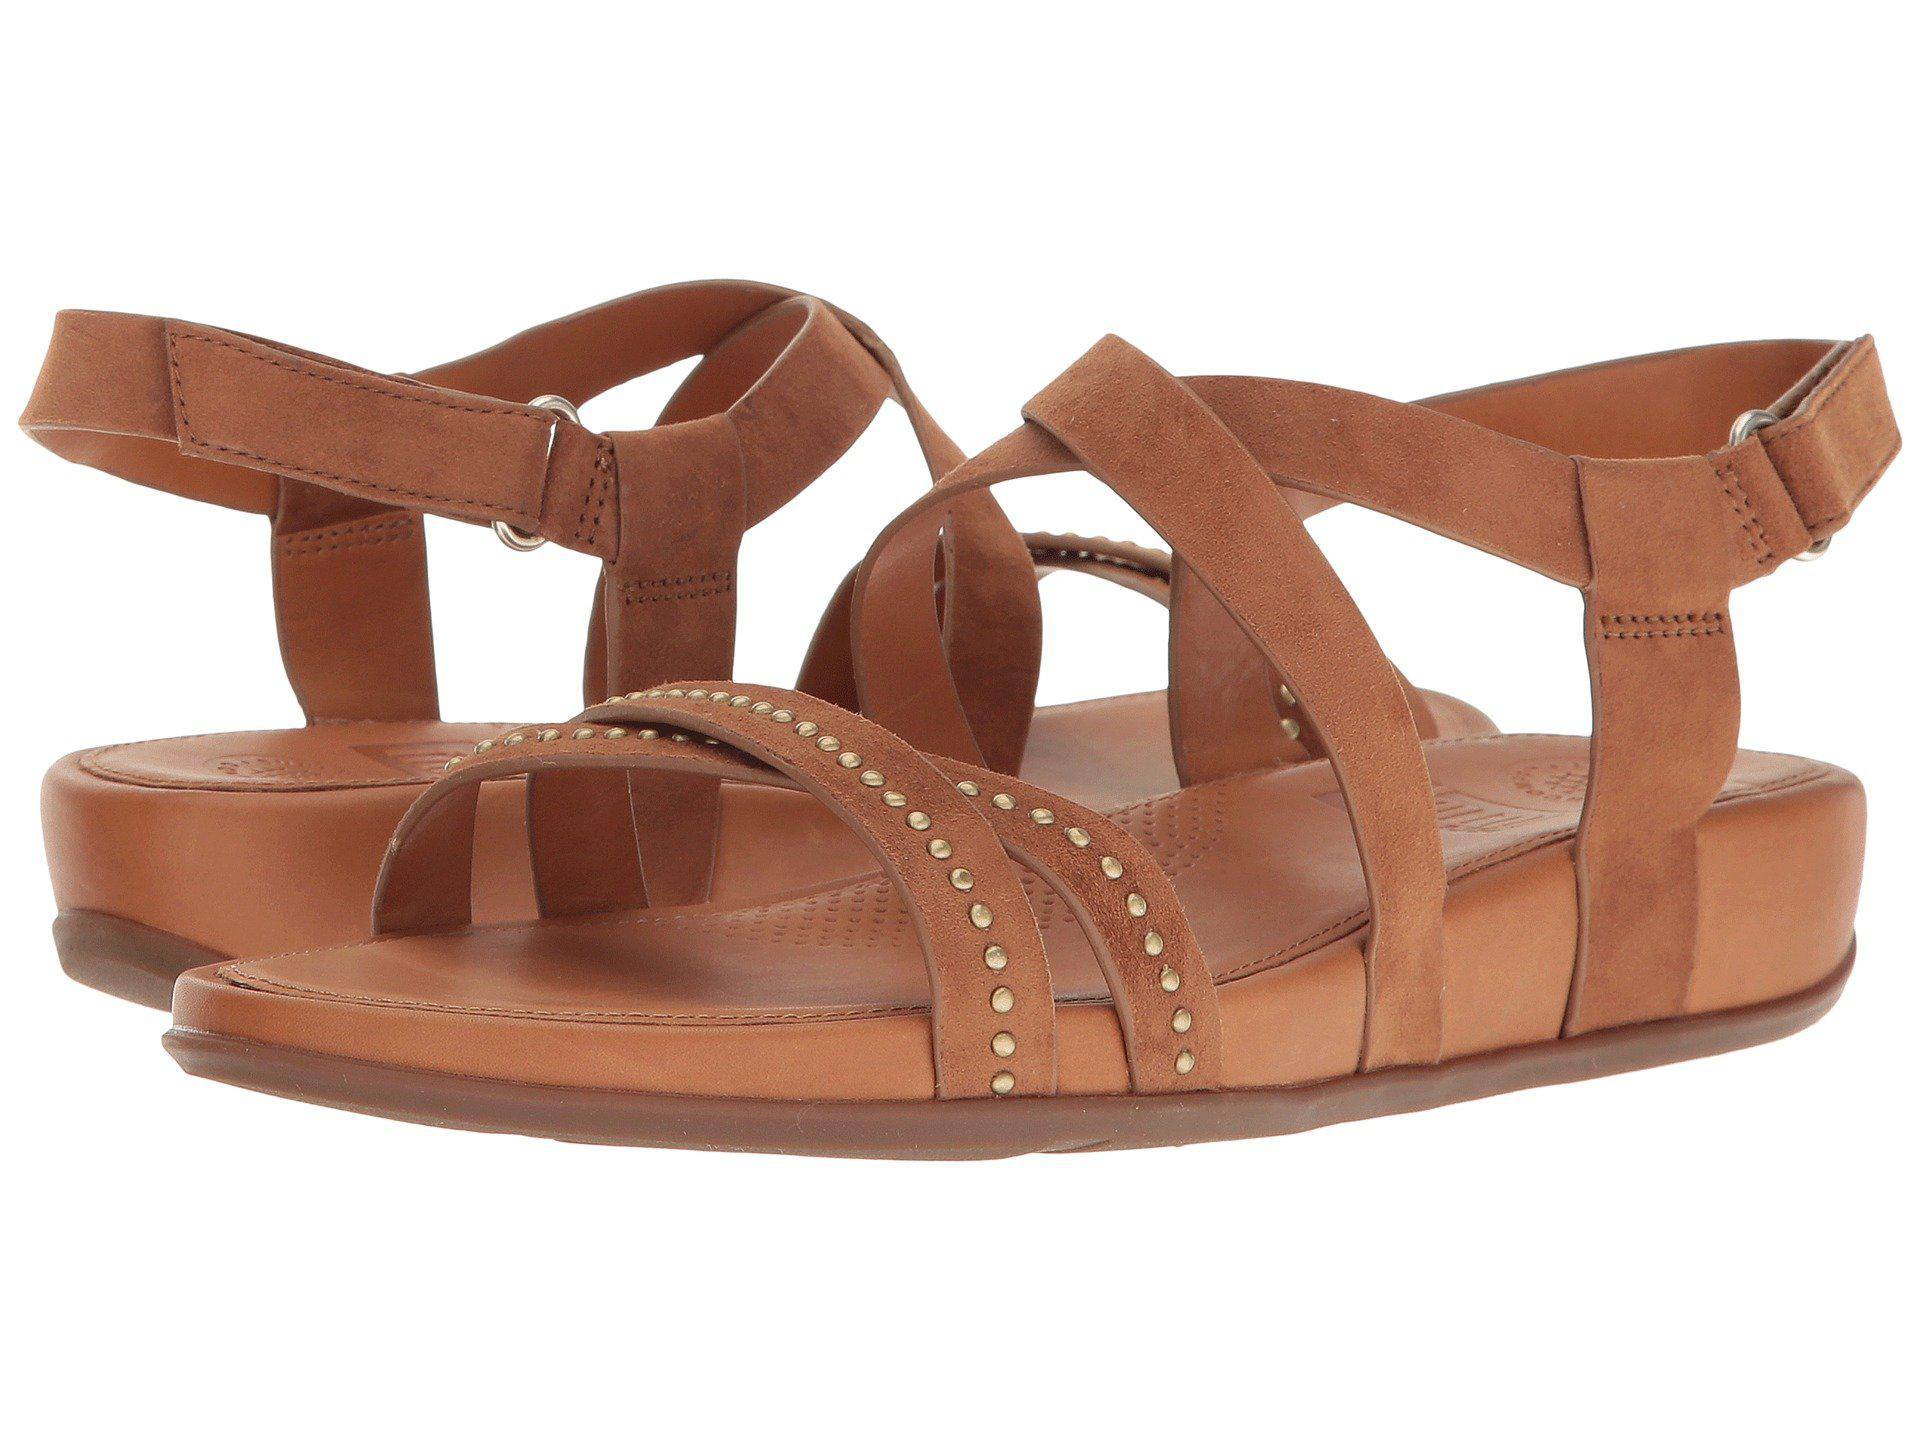 ddf0b470ca196 Lyst - Fitflop Lumy Crisscross Sandals W  Studs in Brown - Save 21%